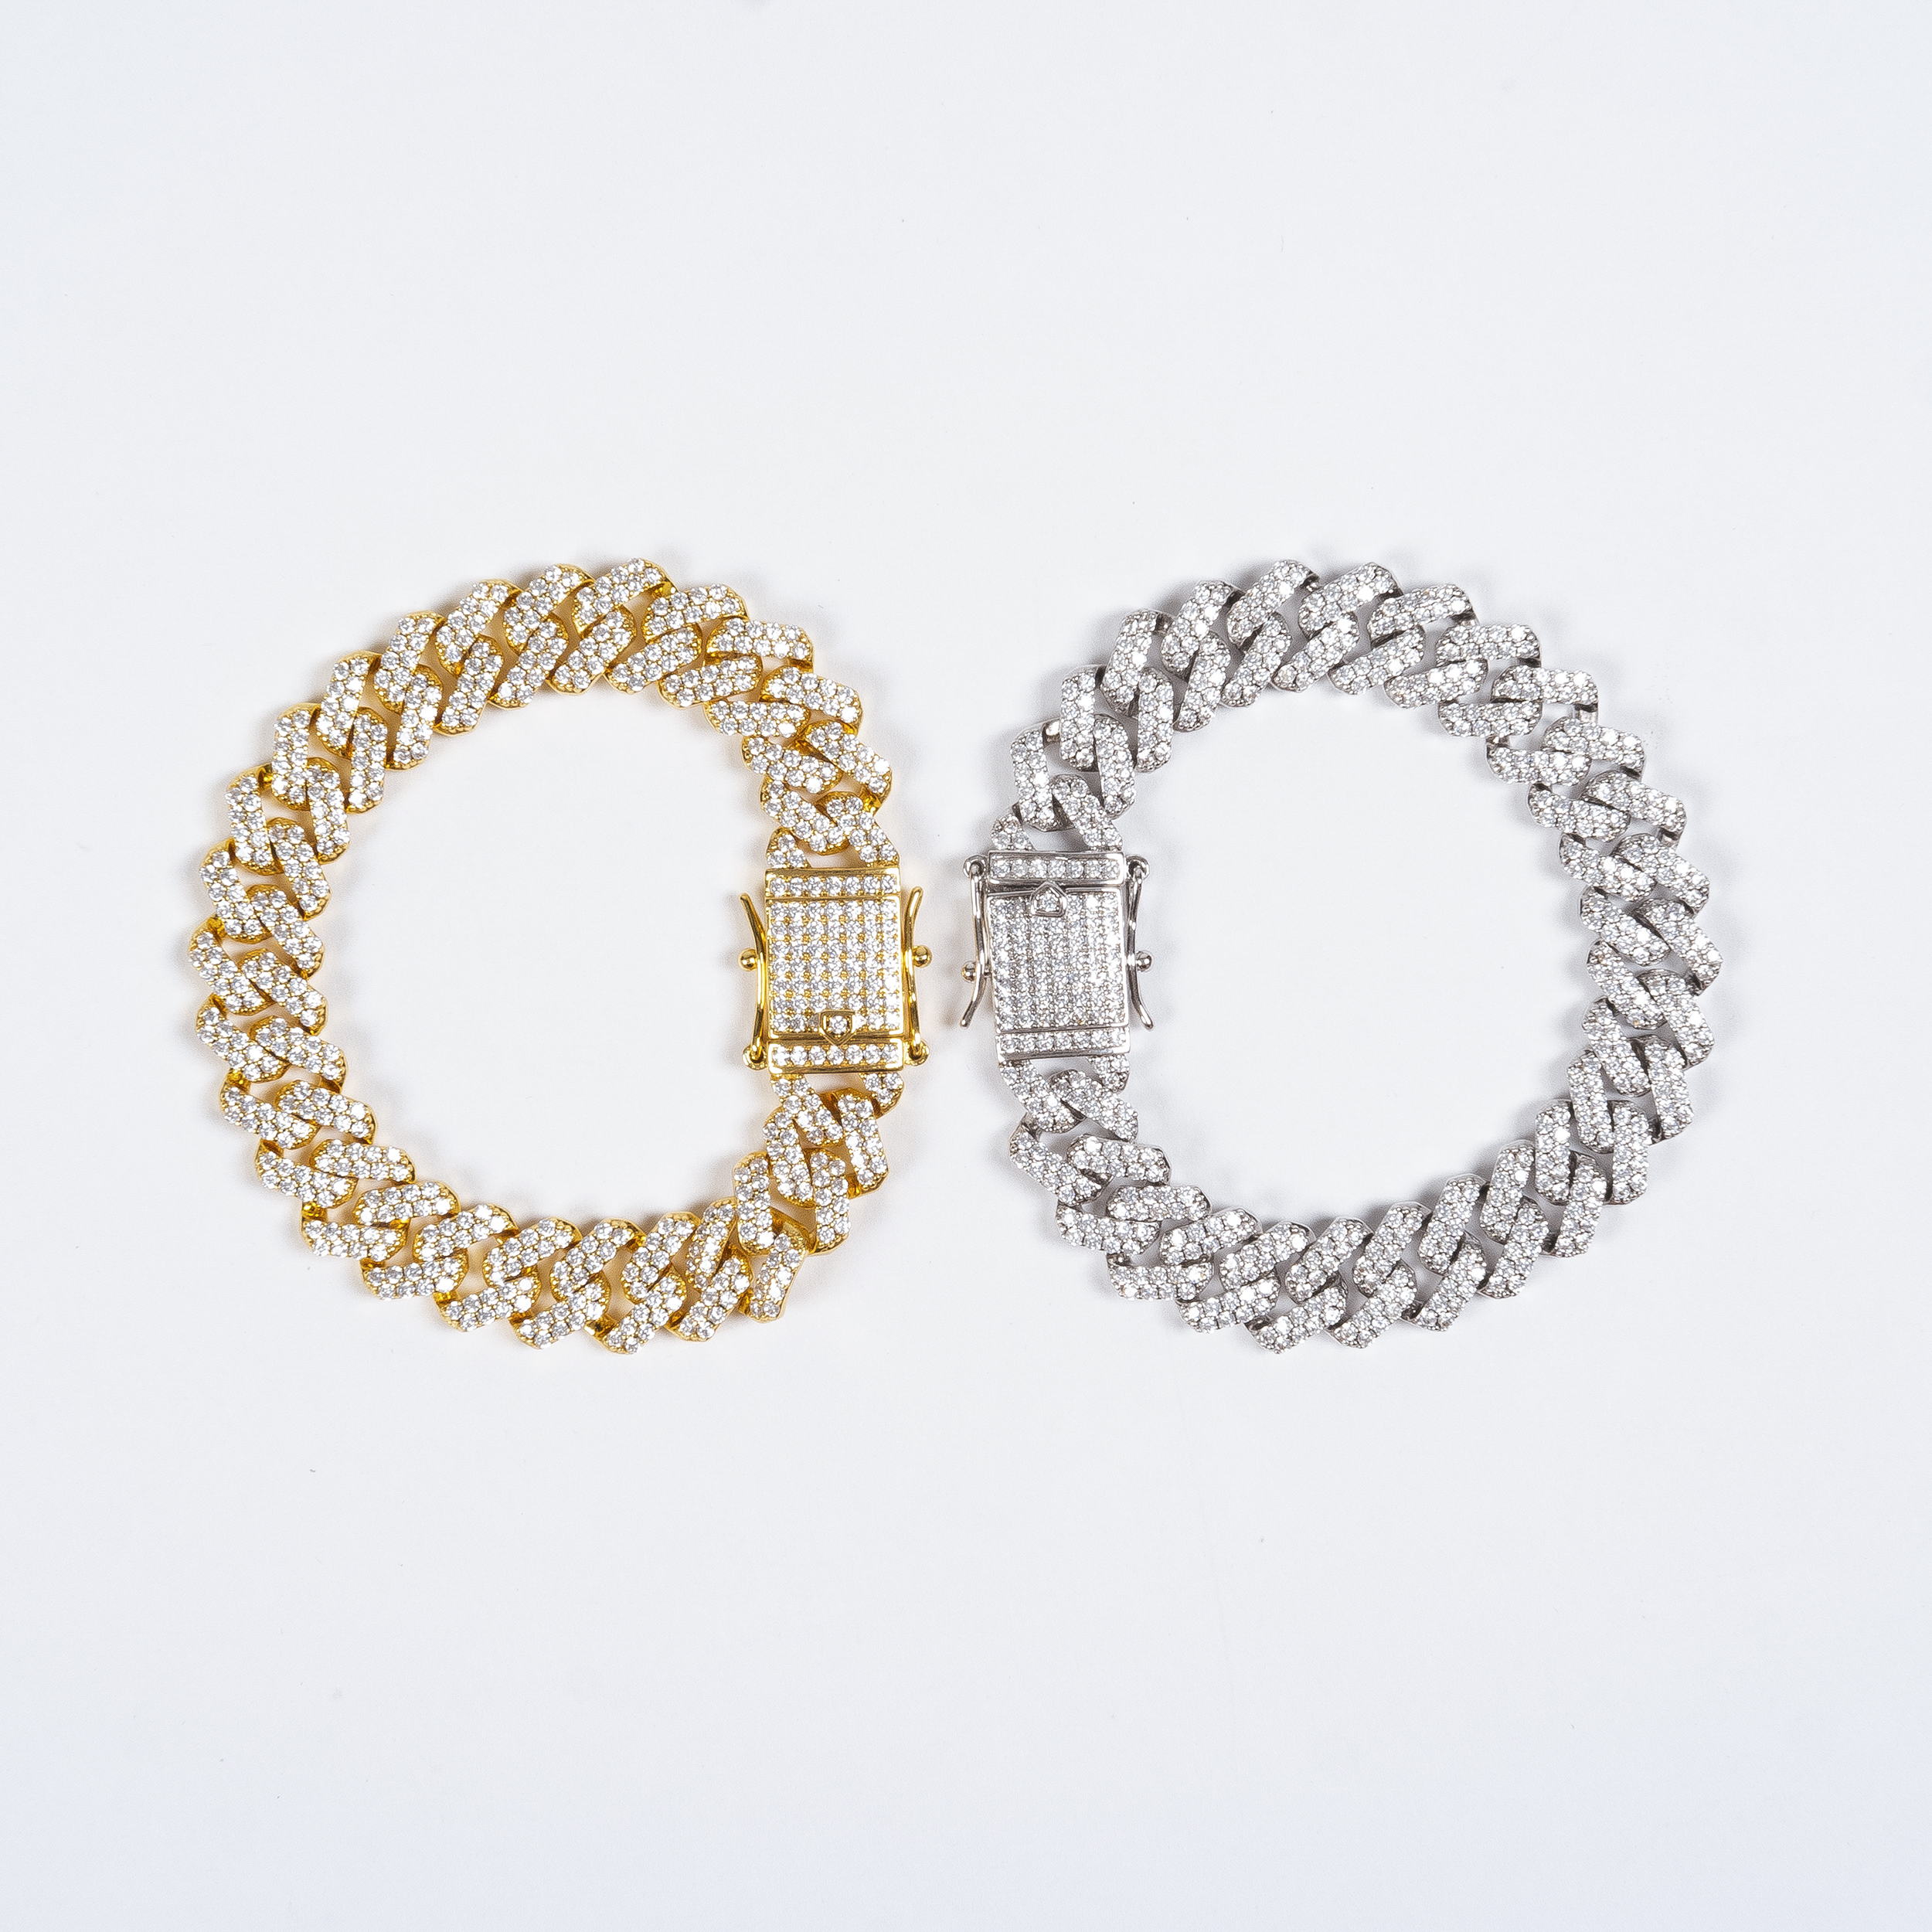 ICED OUT MIAMI CUBAN LINK BRACELET IN GOLD/SILVER